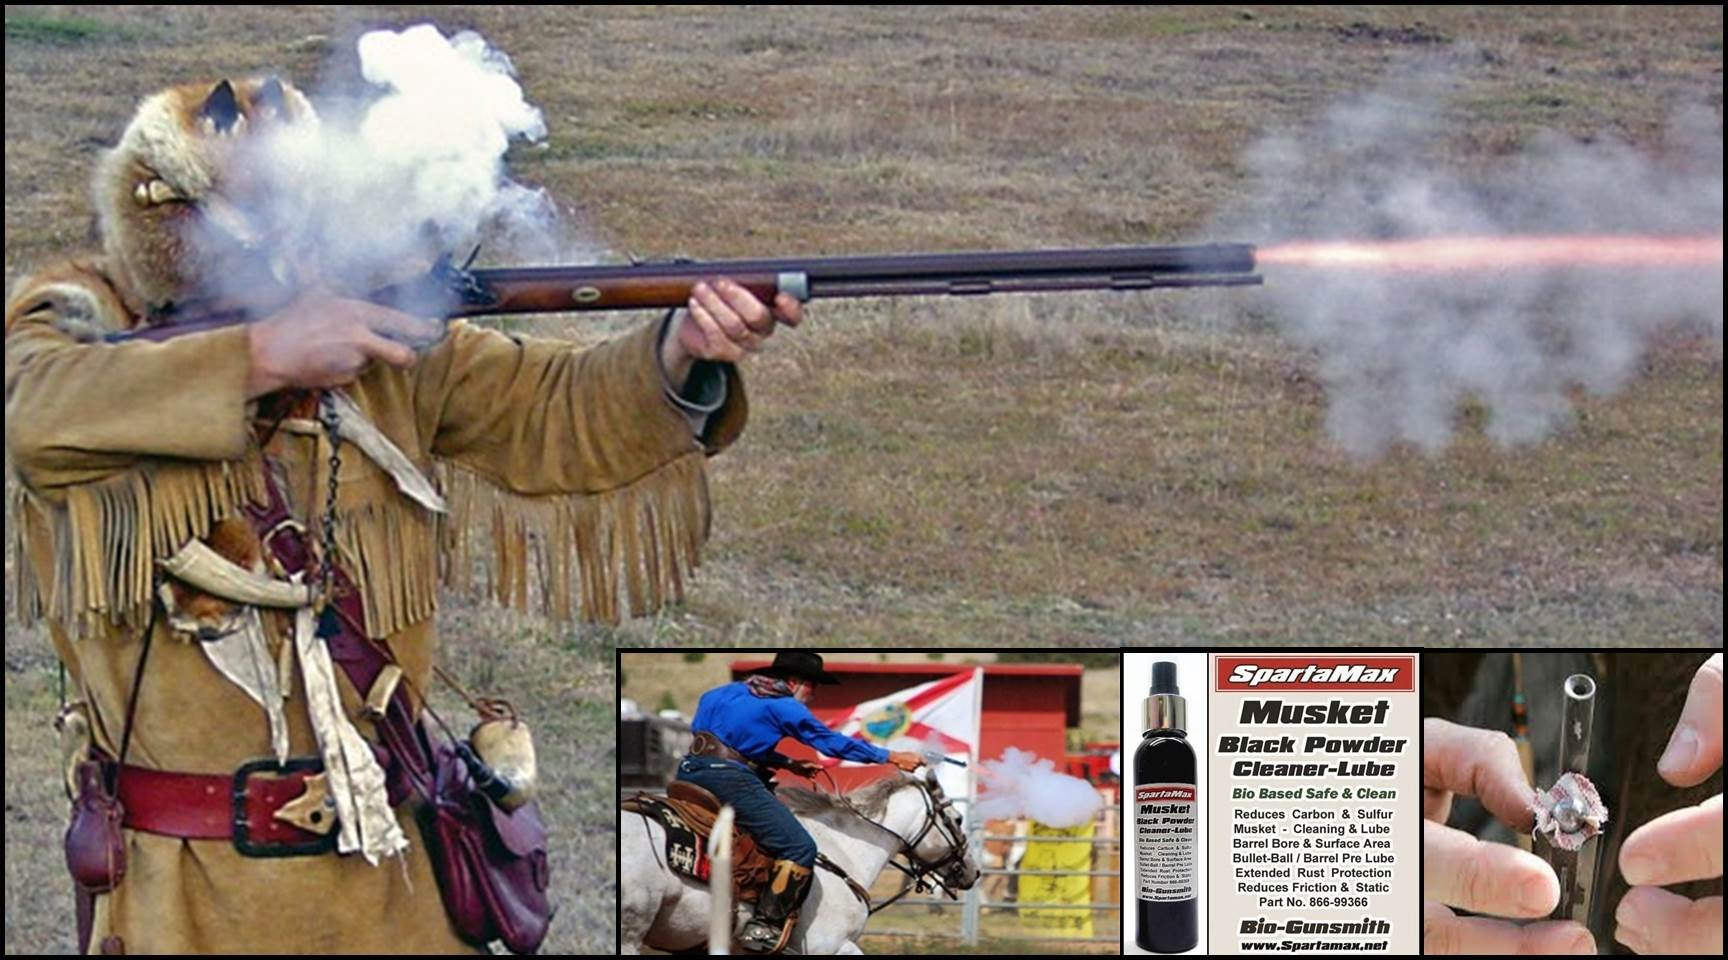 MUSKET IMAGE